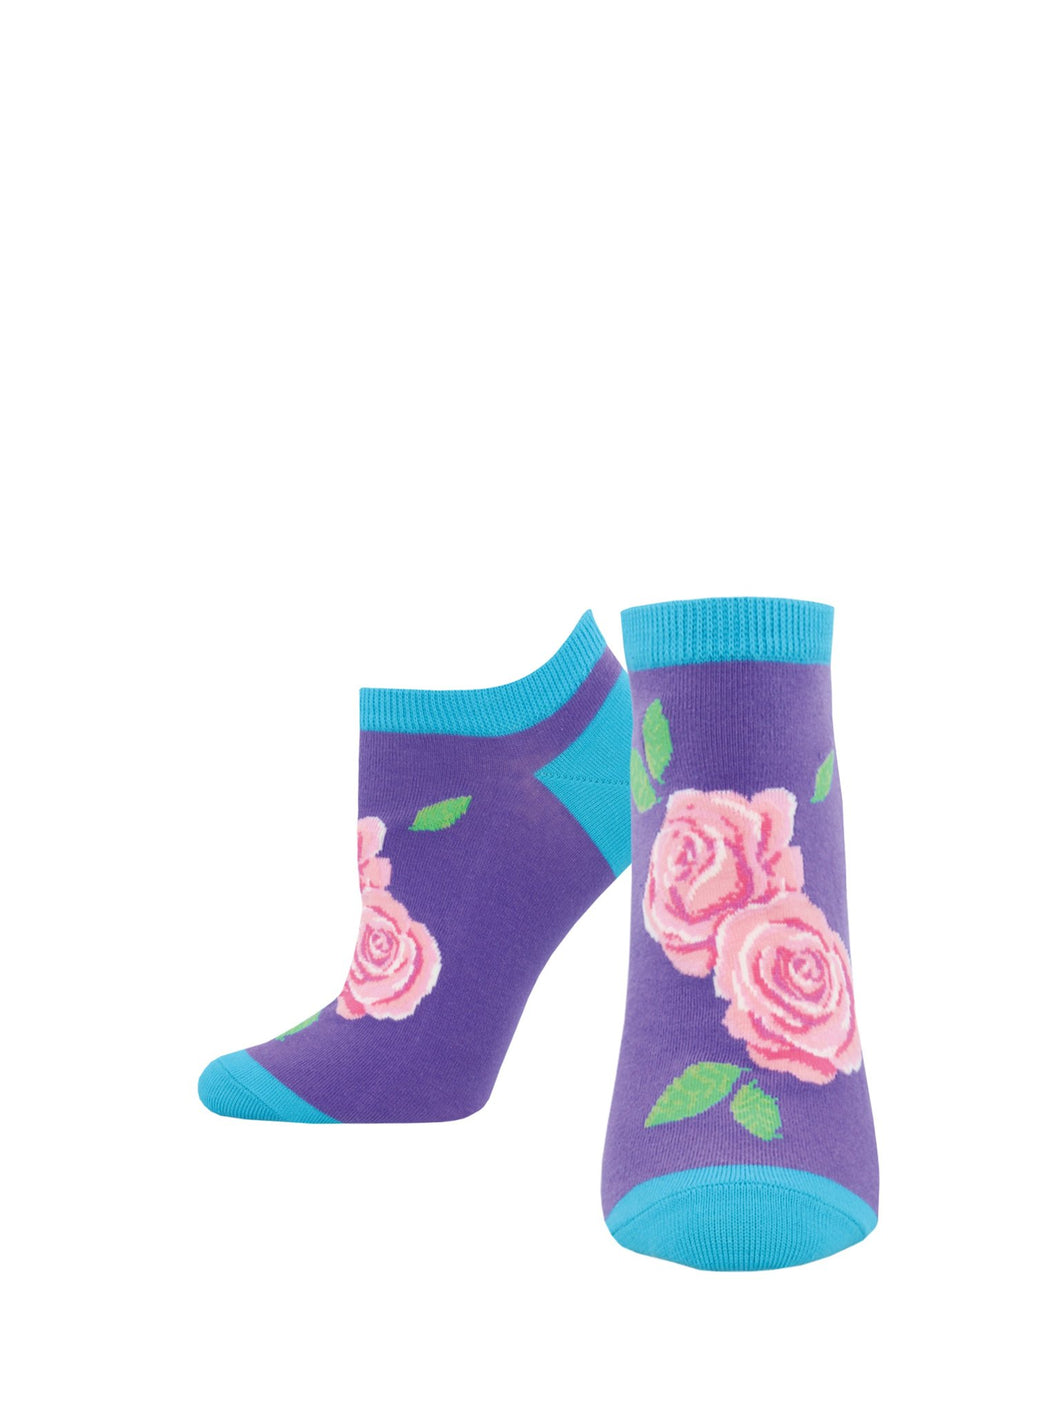 Sock Smith shortie flower socks